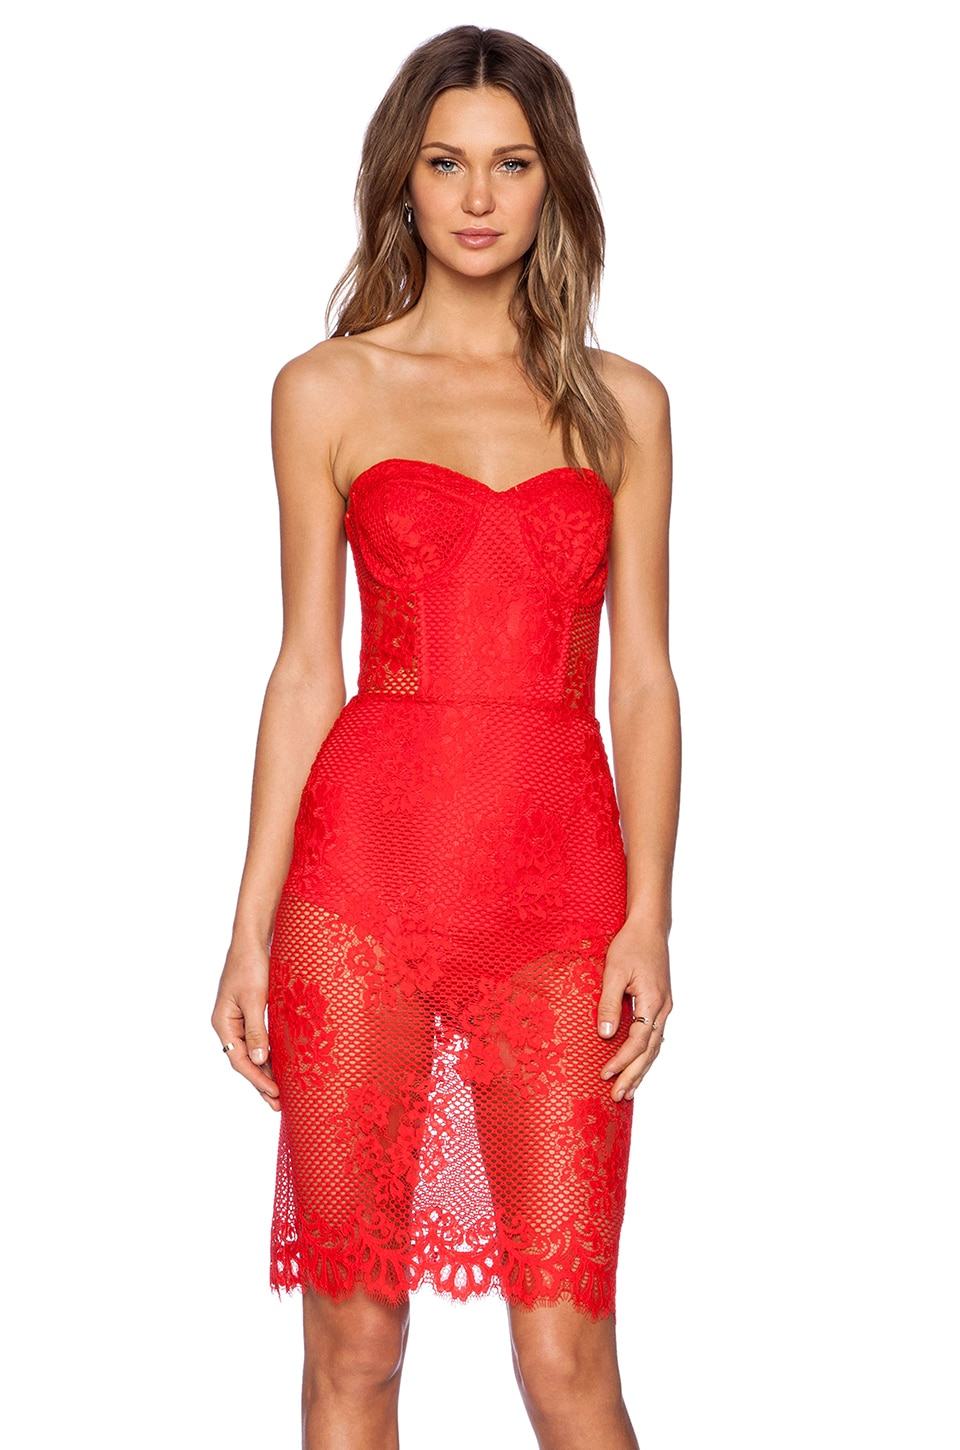 For Love & Lemons Garden Isle Dress in Cherry Red